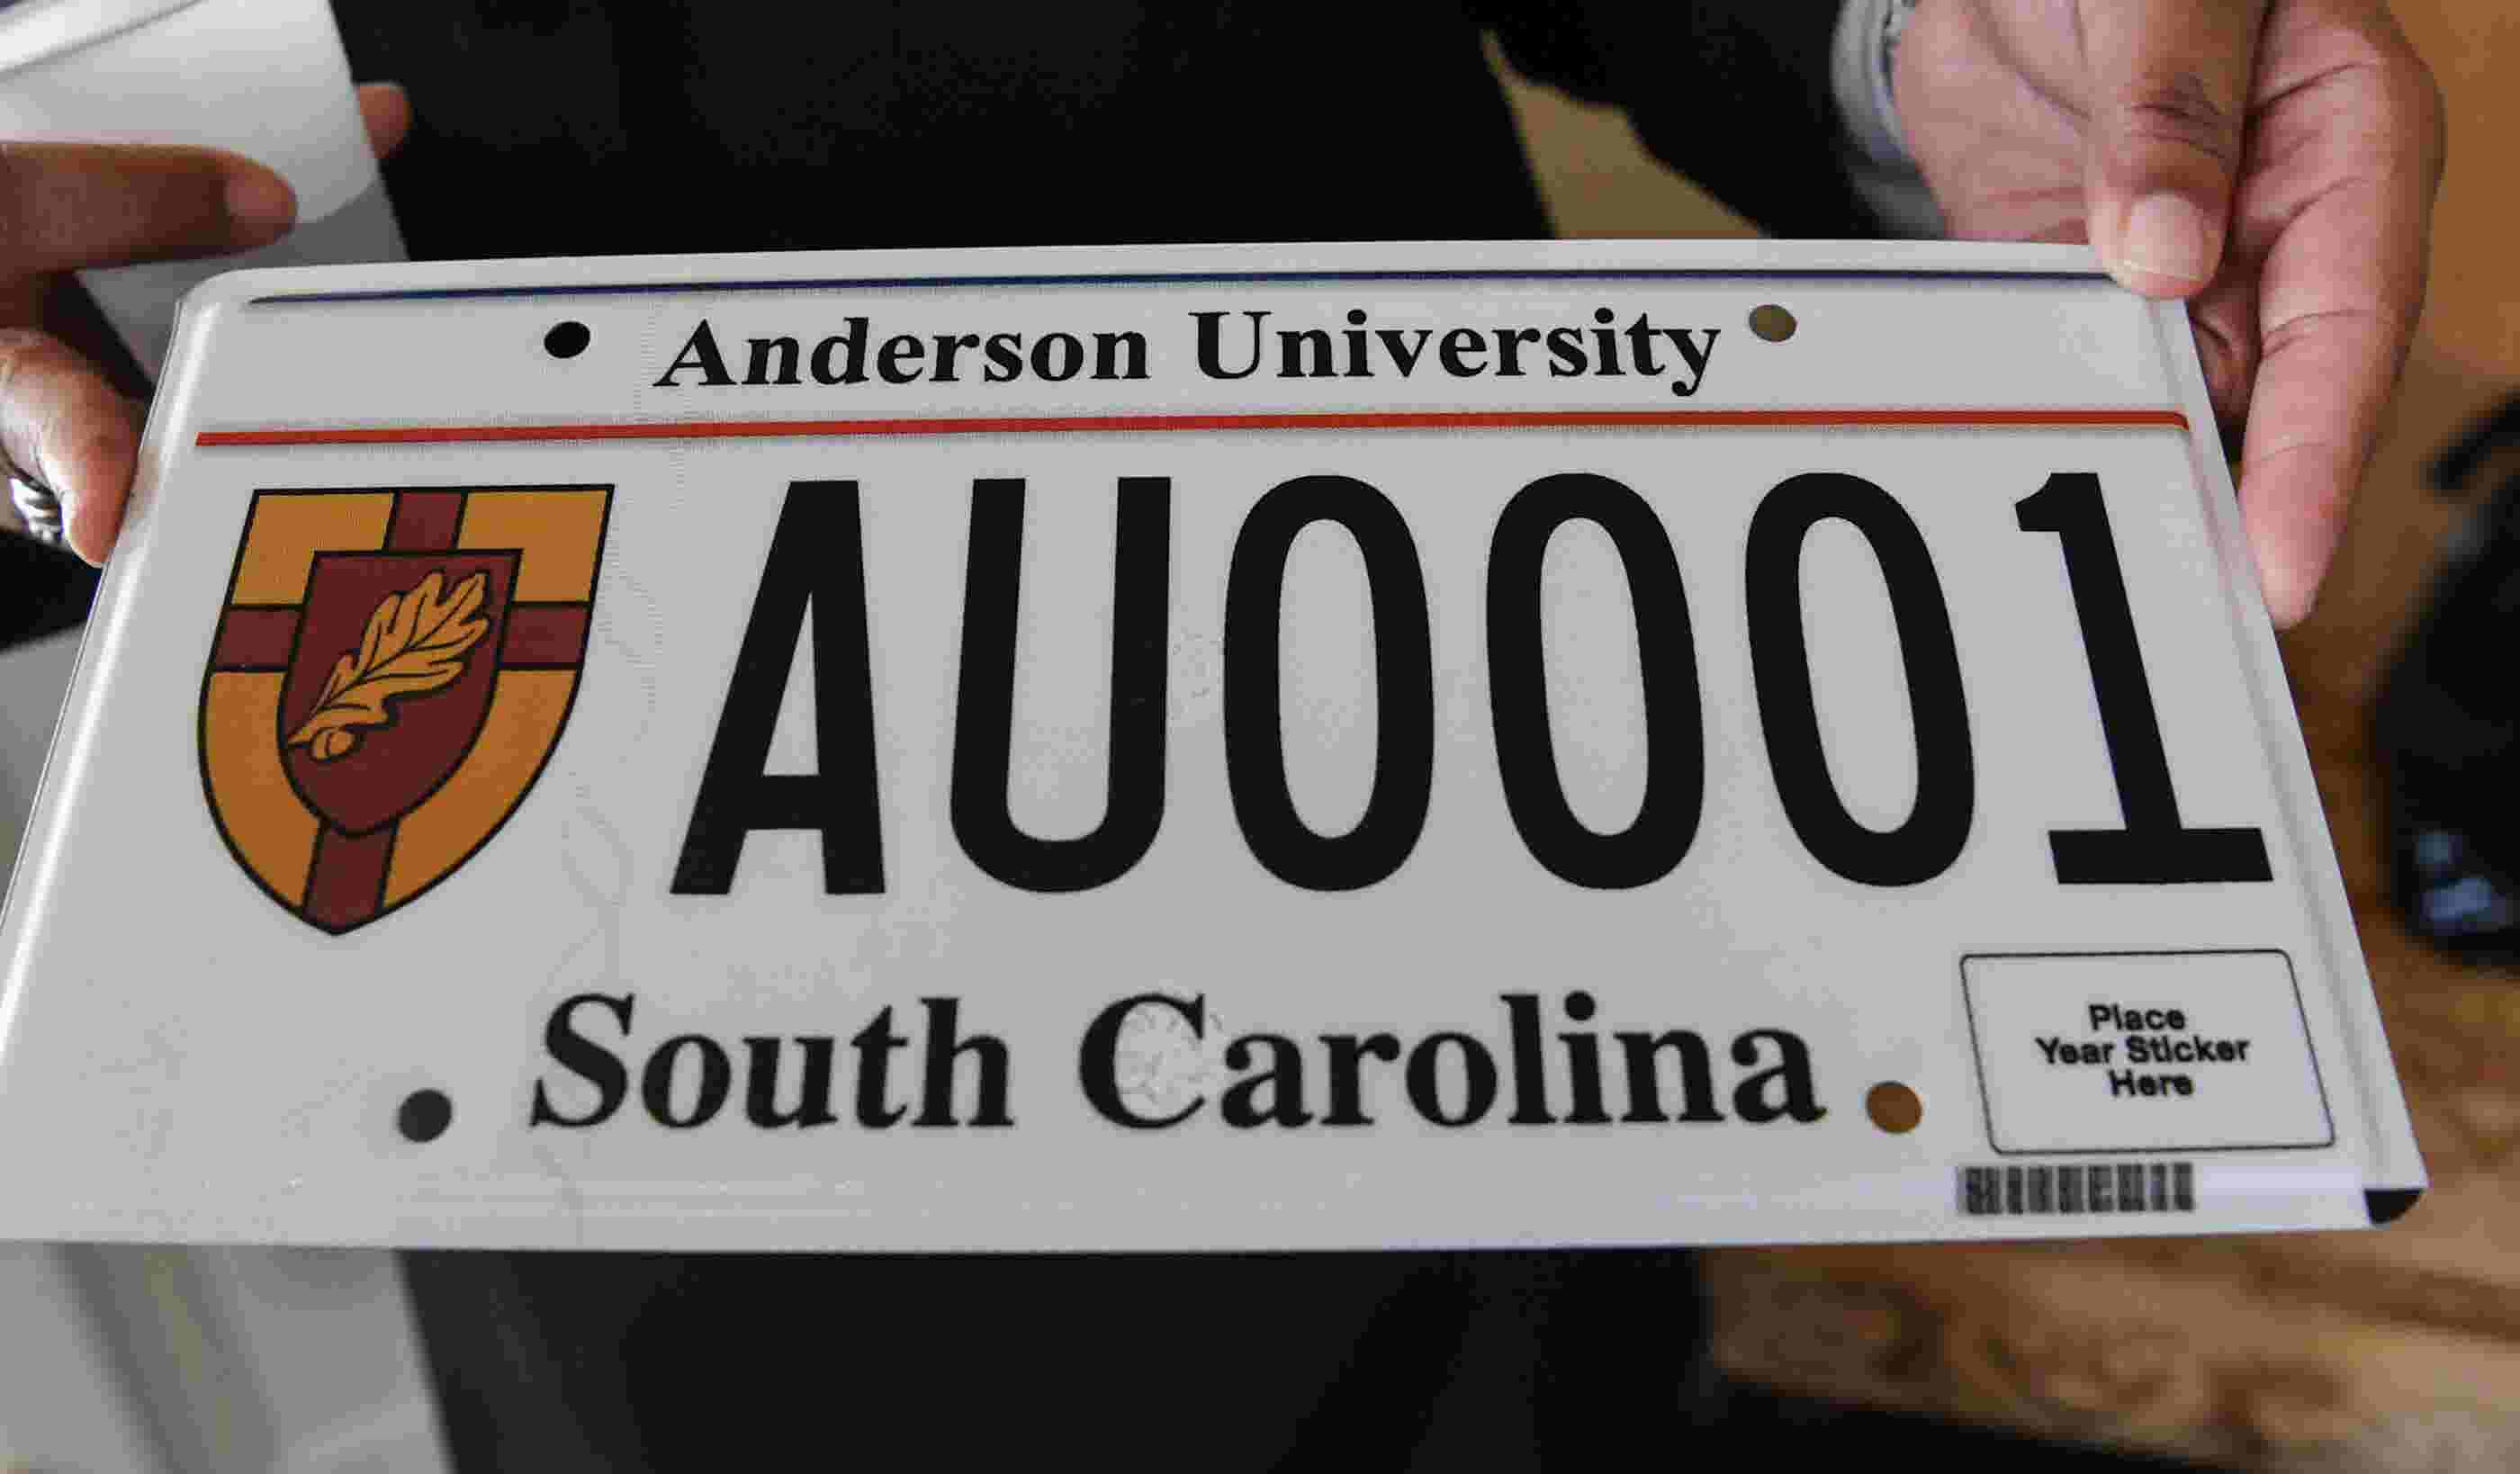 Dmv Anderson Announces Plates University Personalized